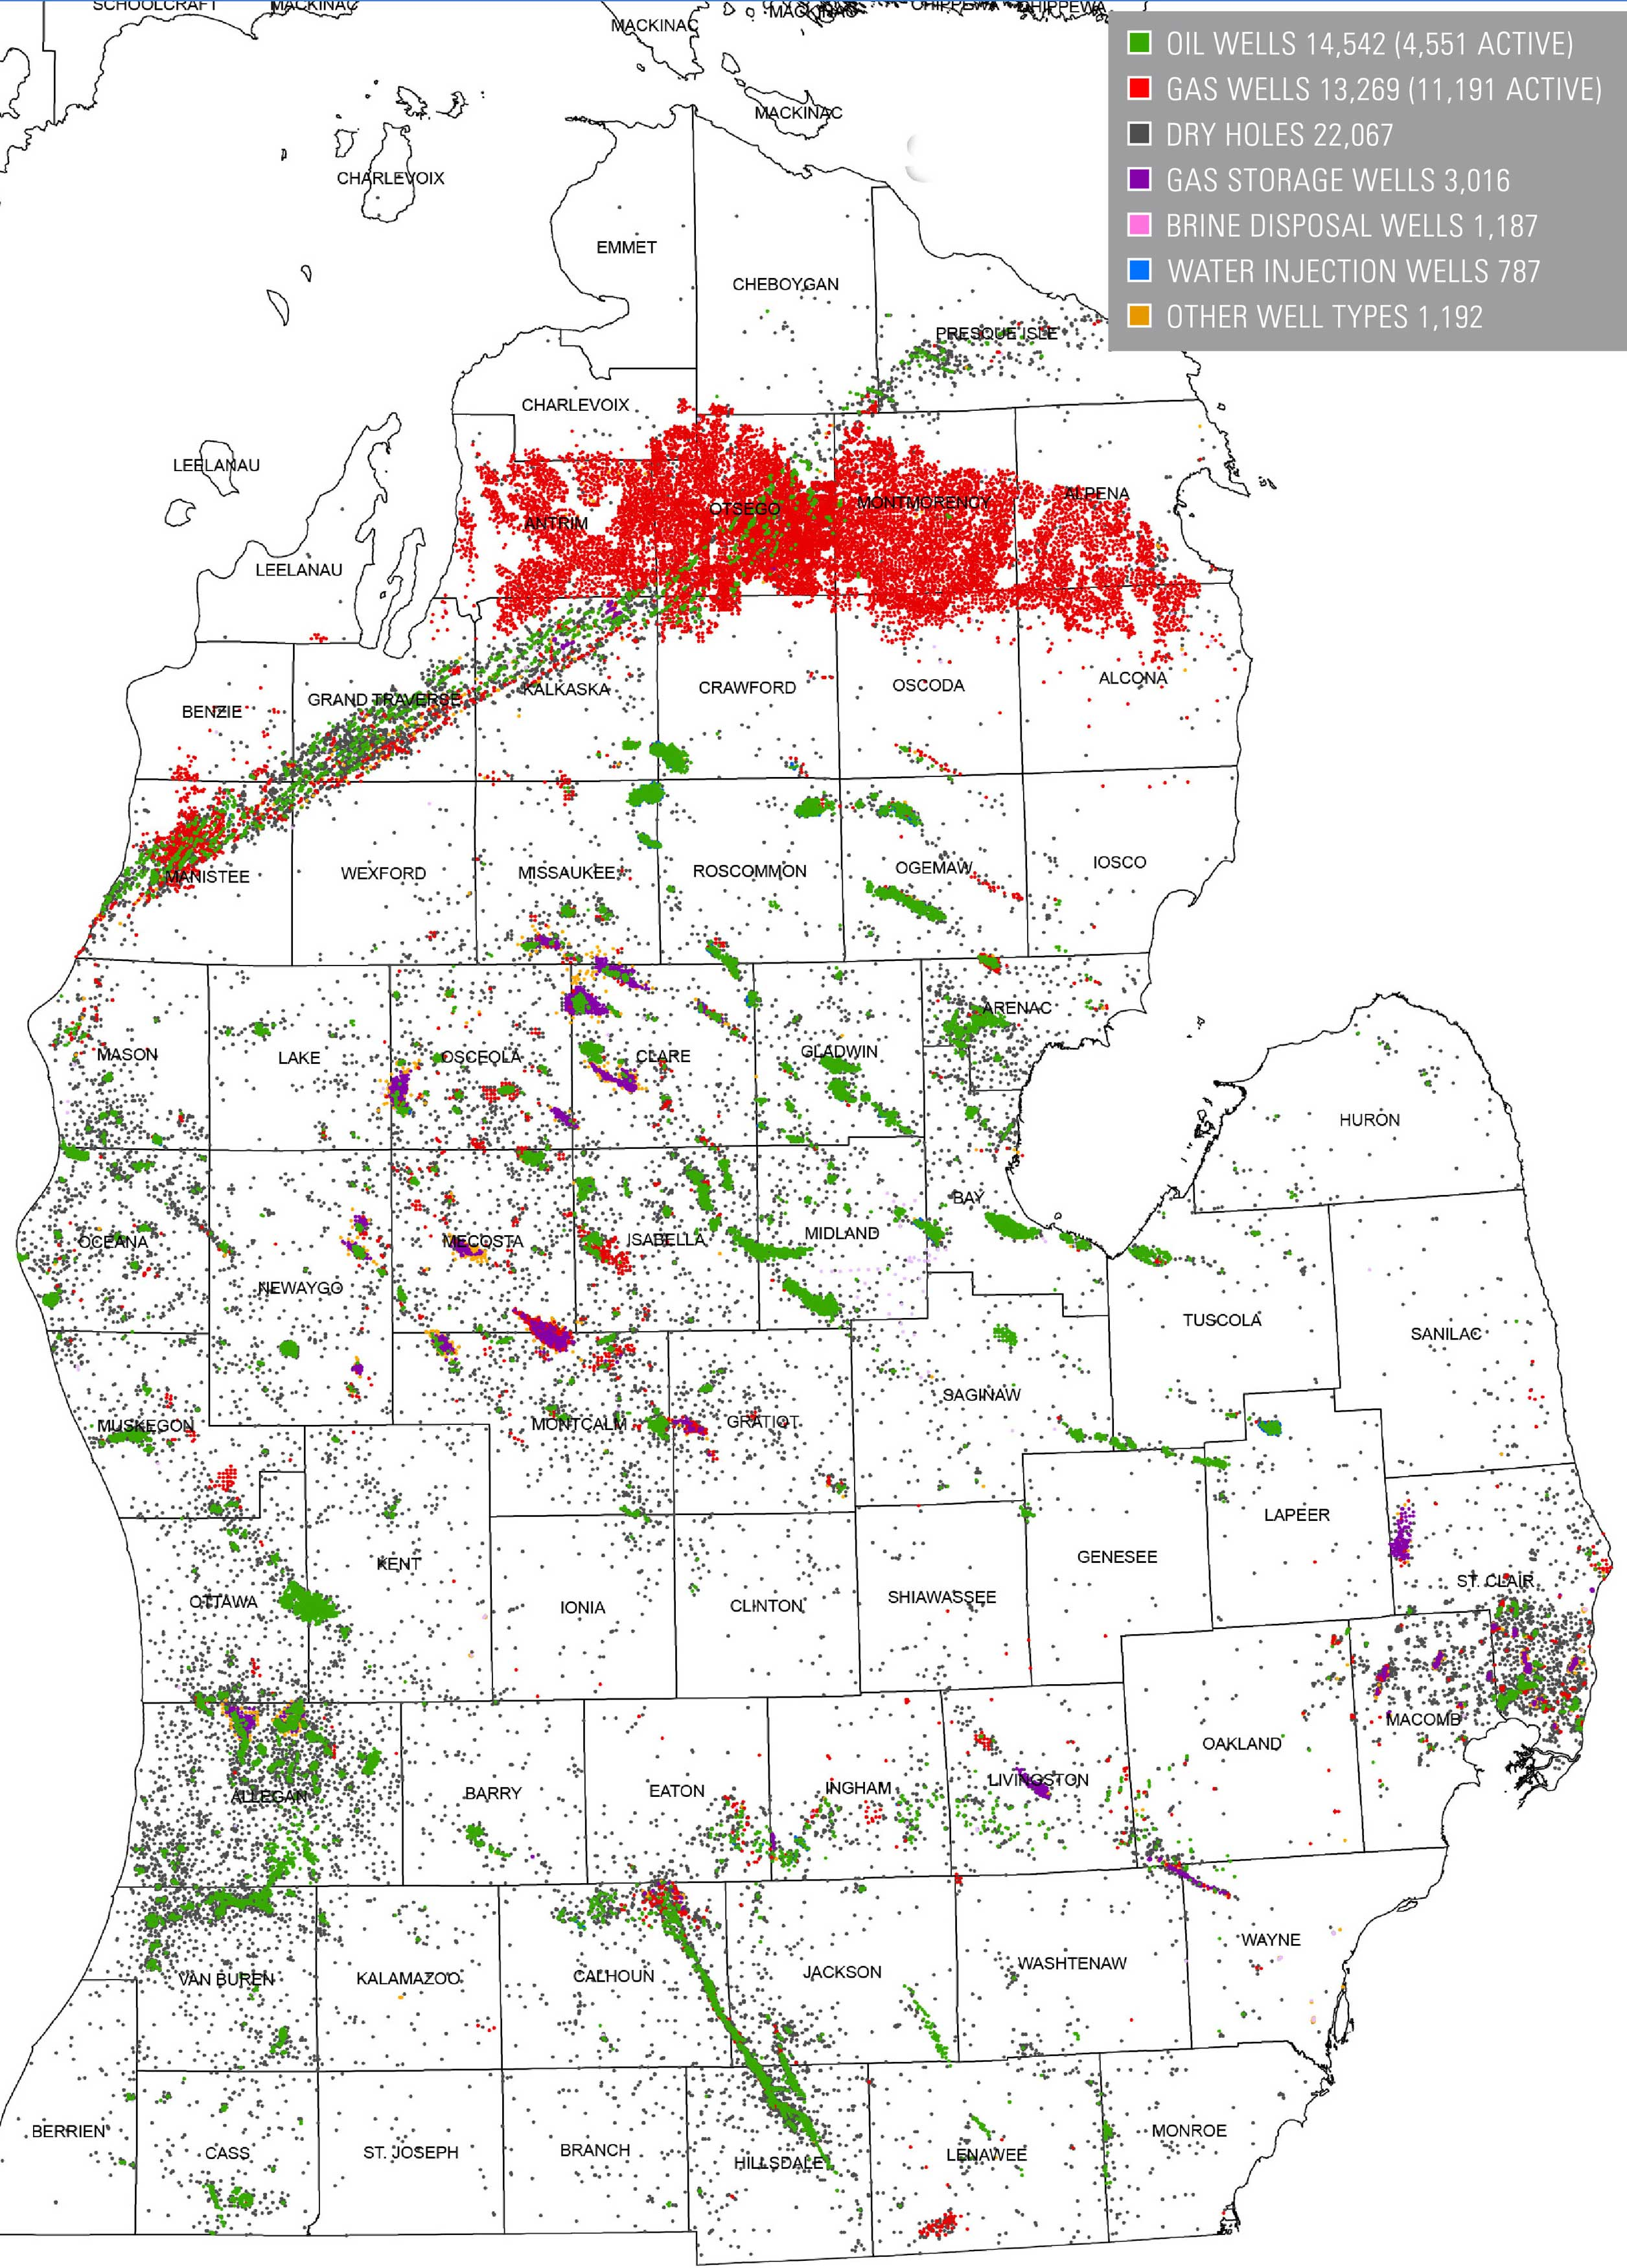 Oil and gas wells in Michigan's Lower Peninsula in 2005. Image courtesy: Michigan Department of Environmental Quality